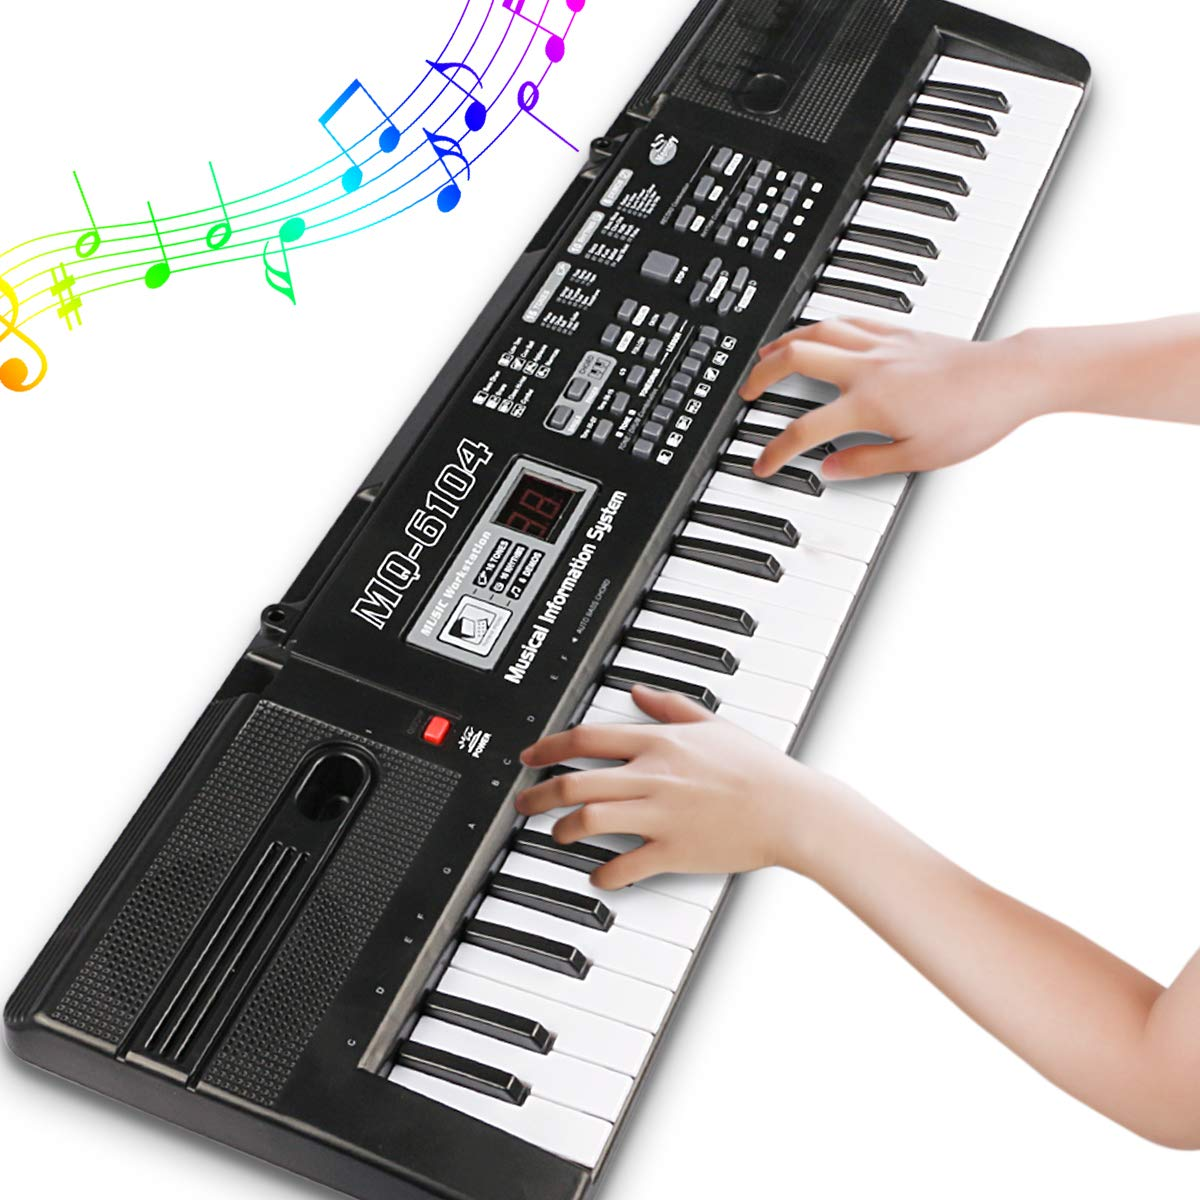 Digital Music Piano Keyboard 61 Key - Portable Electronic Musical Instrument with Microphone Kids Piano Musical Teaching Keyboard Toy For Birthday Christmas Festival Gift by Tencoz (Image #3)